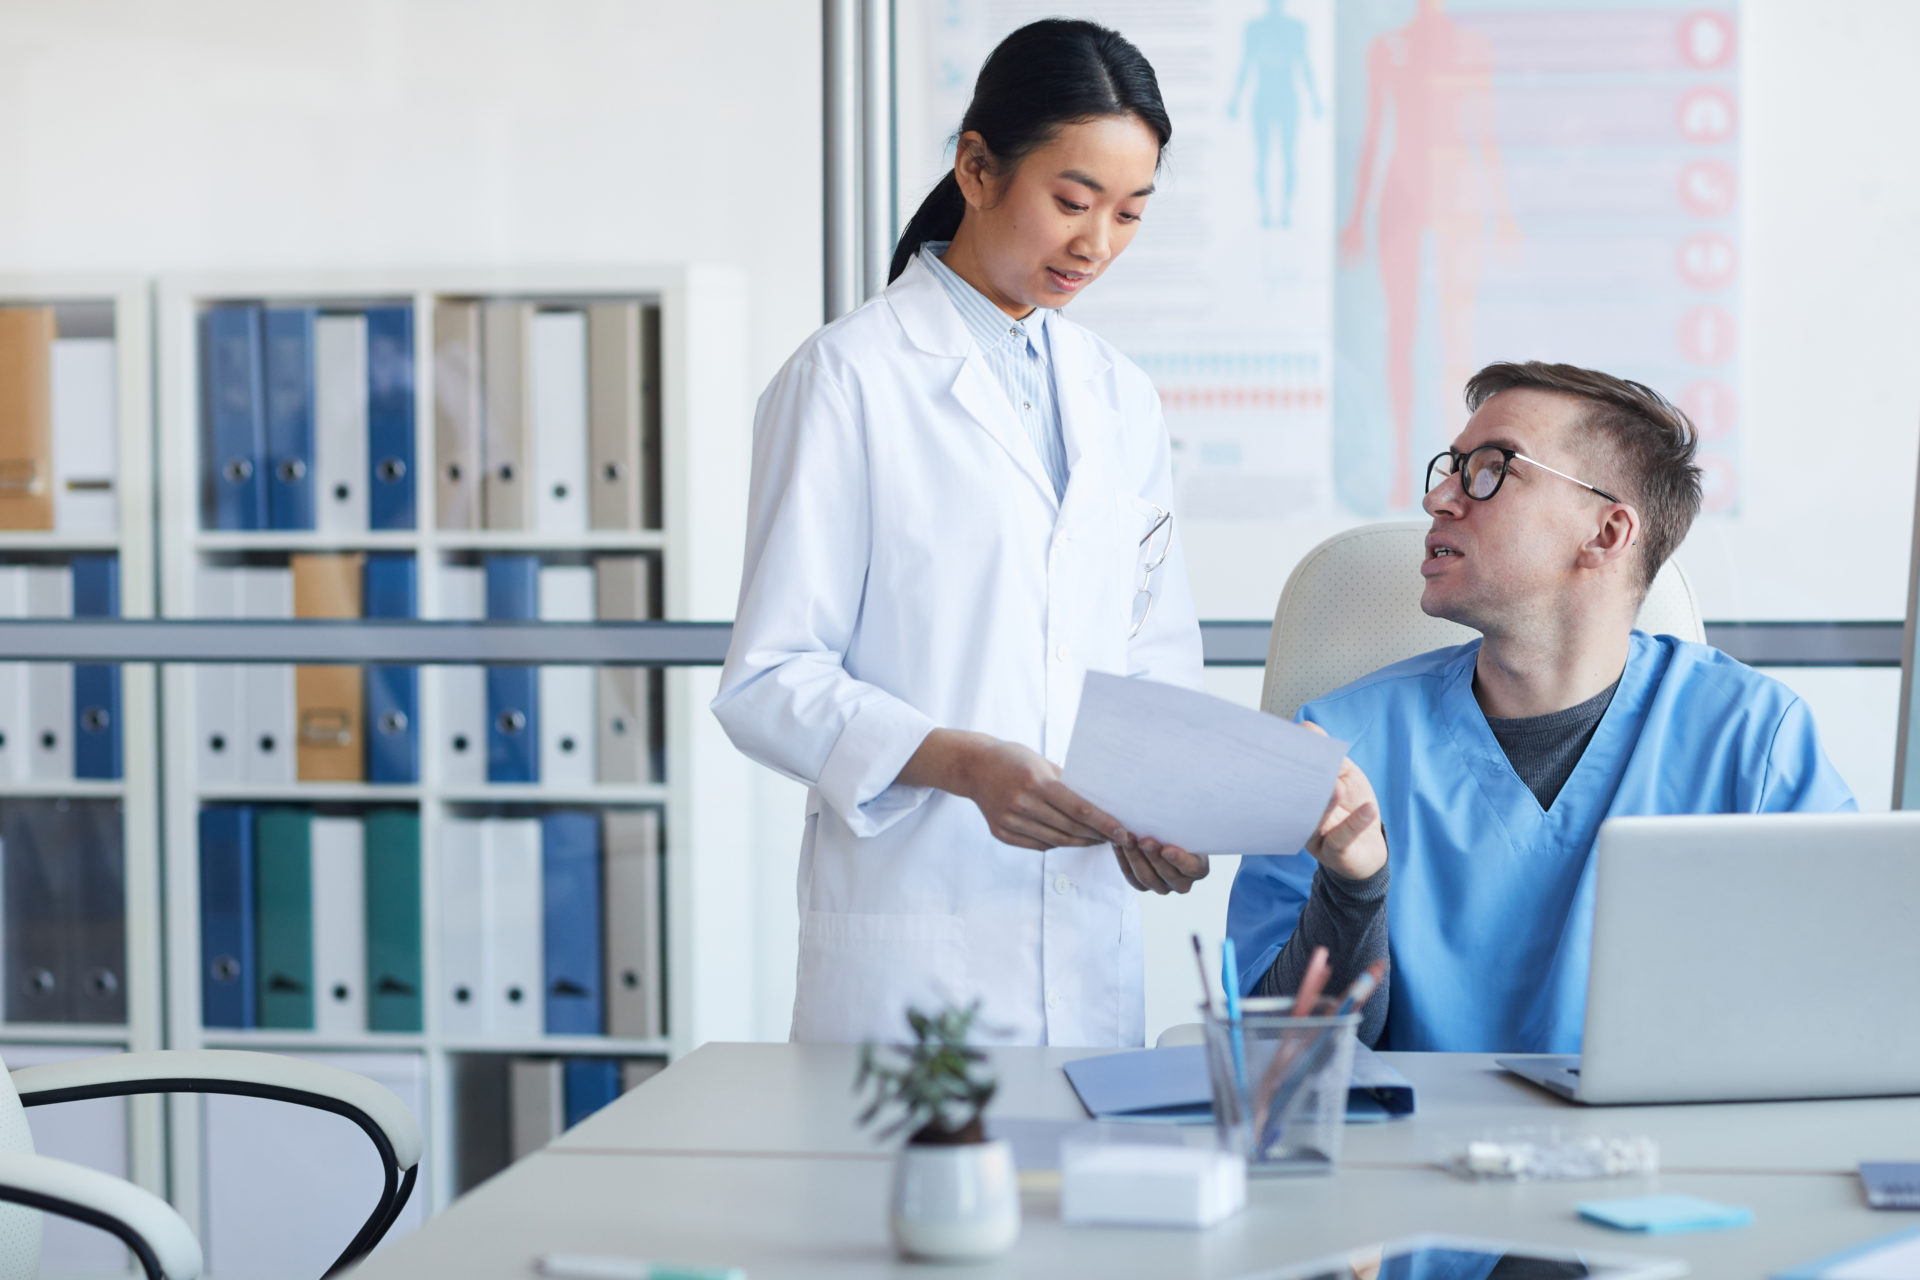 """MO can help you obtain your Mini-CEX exam through one of our US Clinical Experiences, but watch out for providers who advertise that a Mini-CEX exam is """"guaranteed"""" during their programs"""